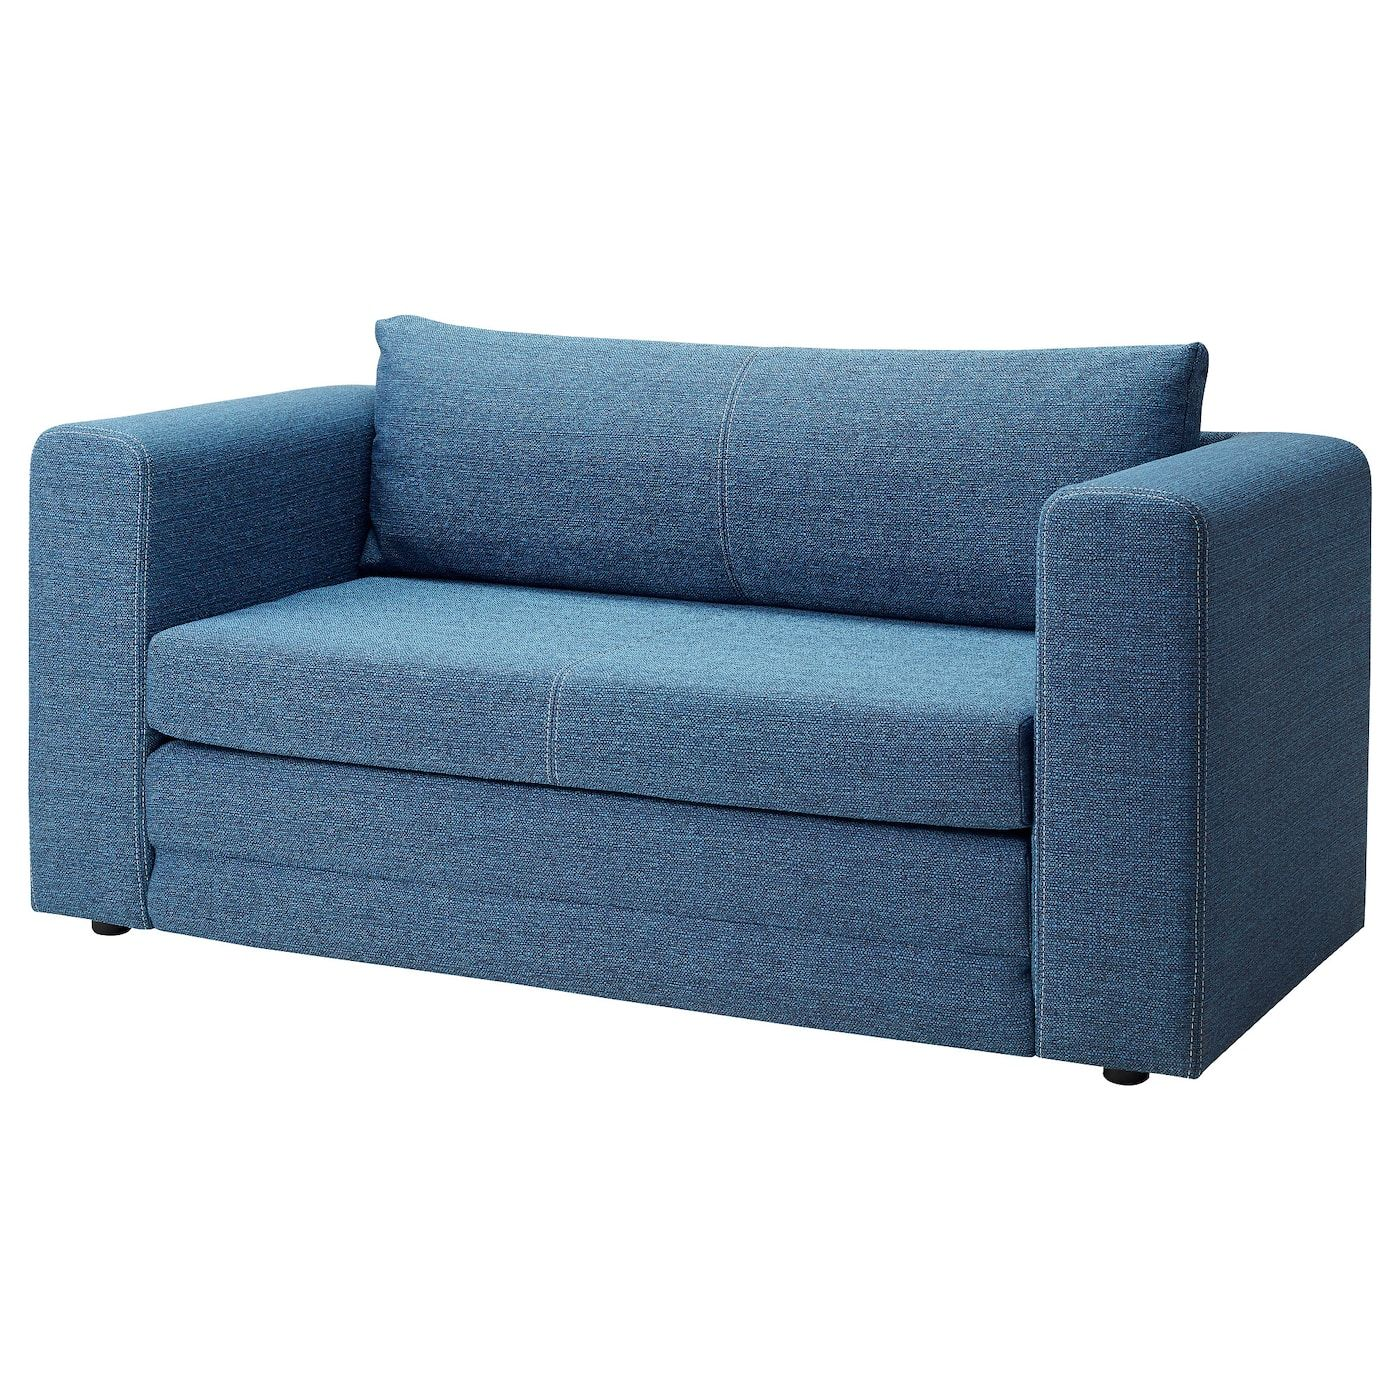 Bettsofa Ikea Blau Askeby 2er Bettsofa Blau Ikea Namestaj Couch Ikea Furniture